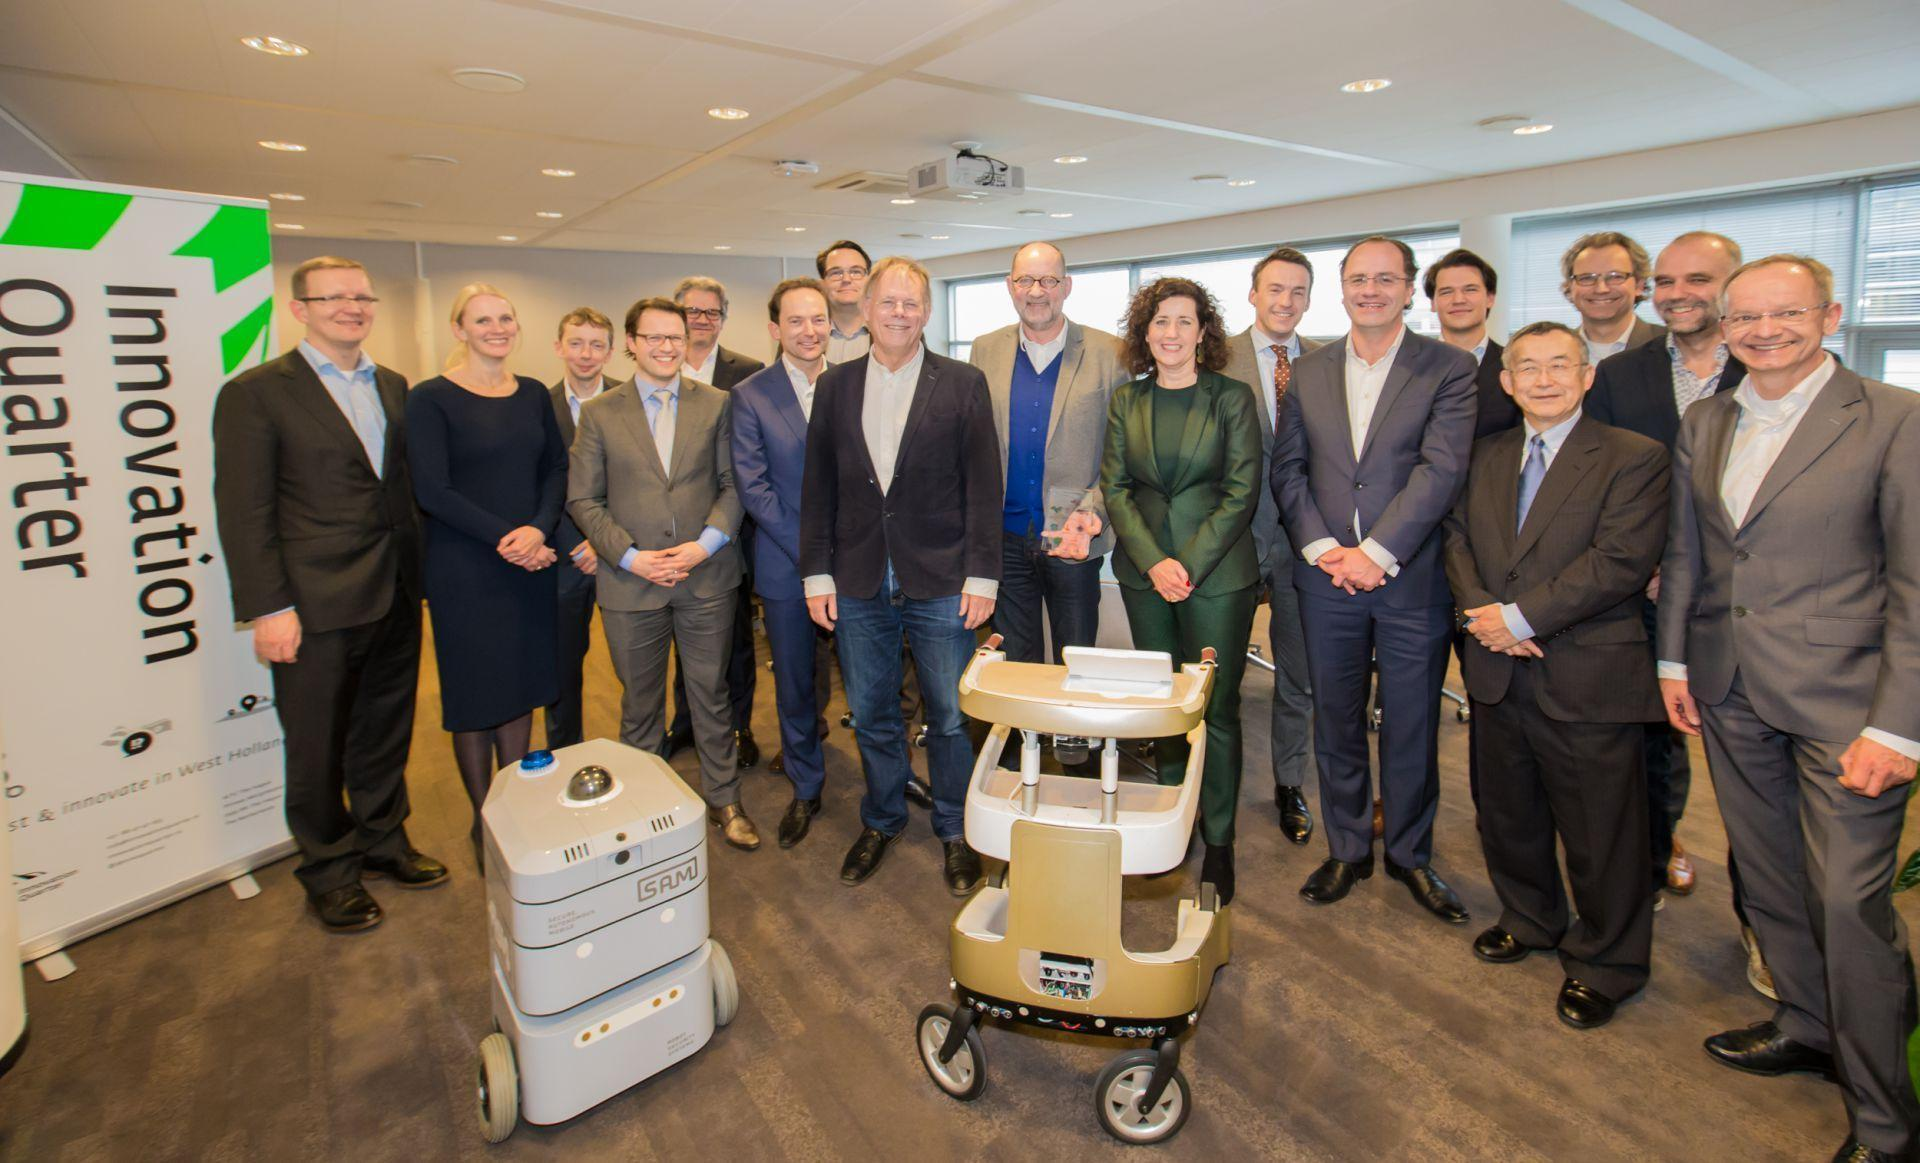 From Pitch to Investment of € 5 Million for Robot Robots Company